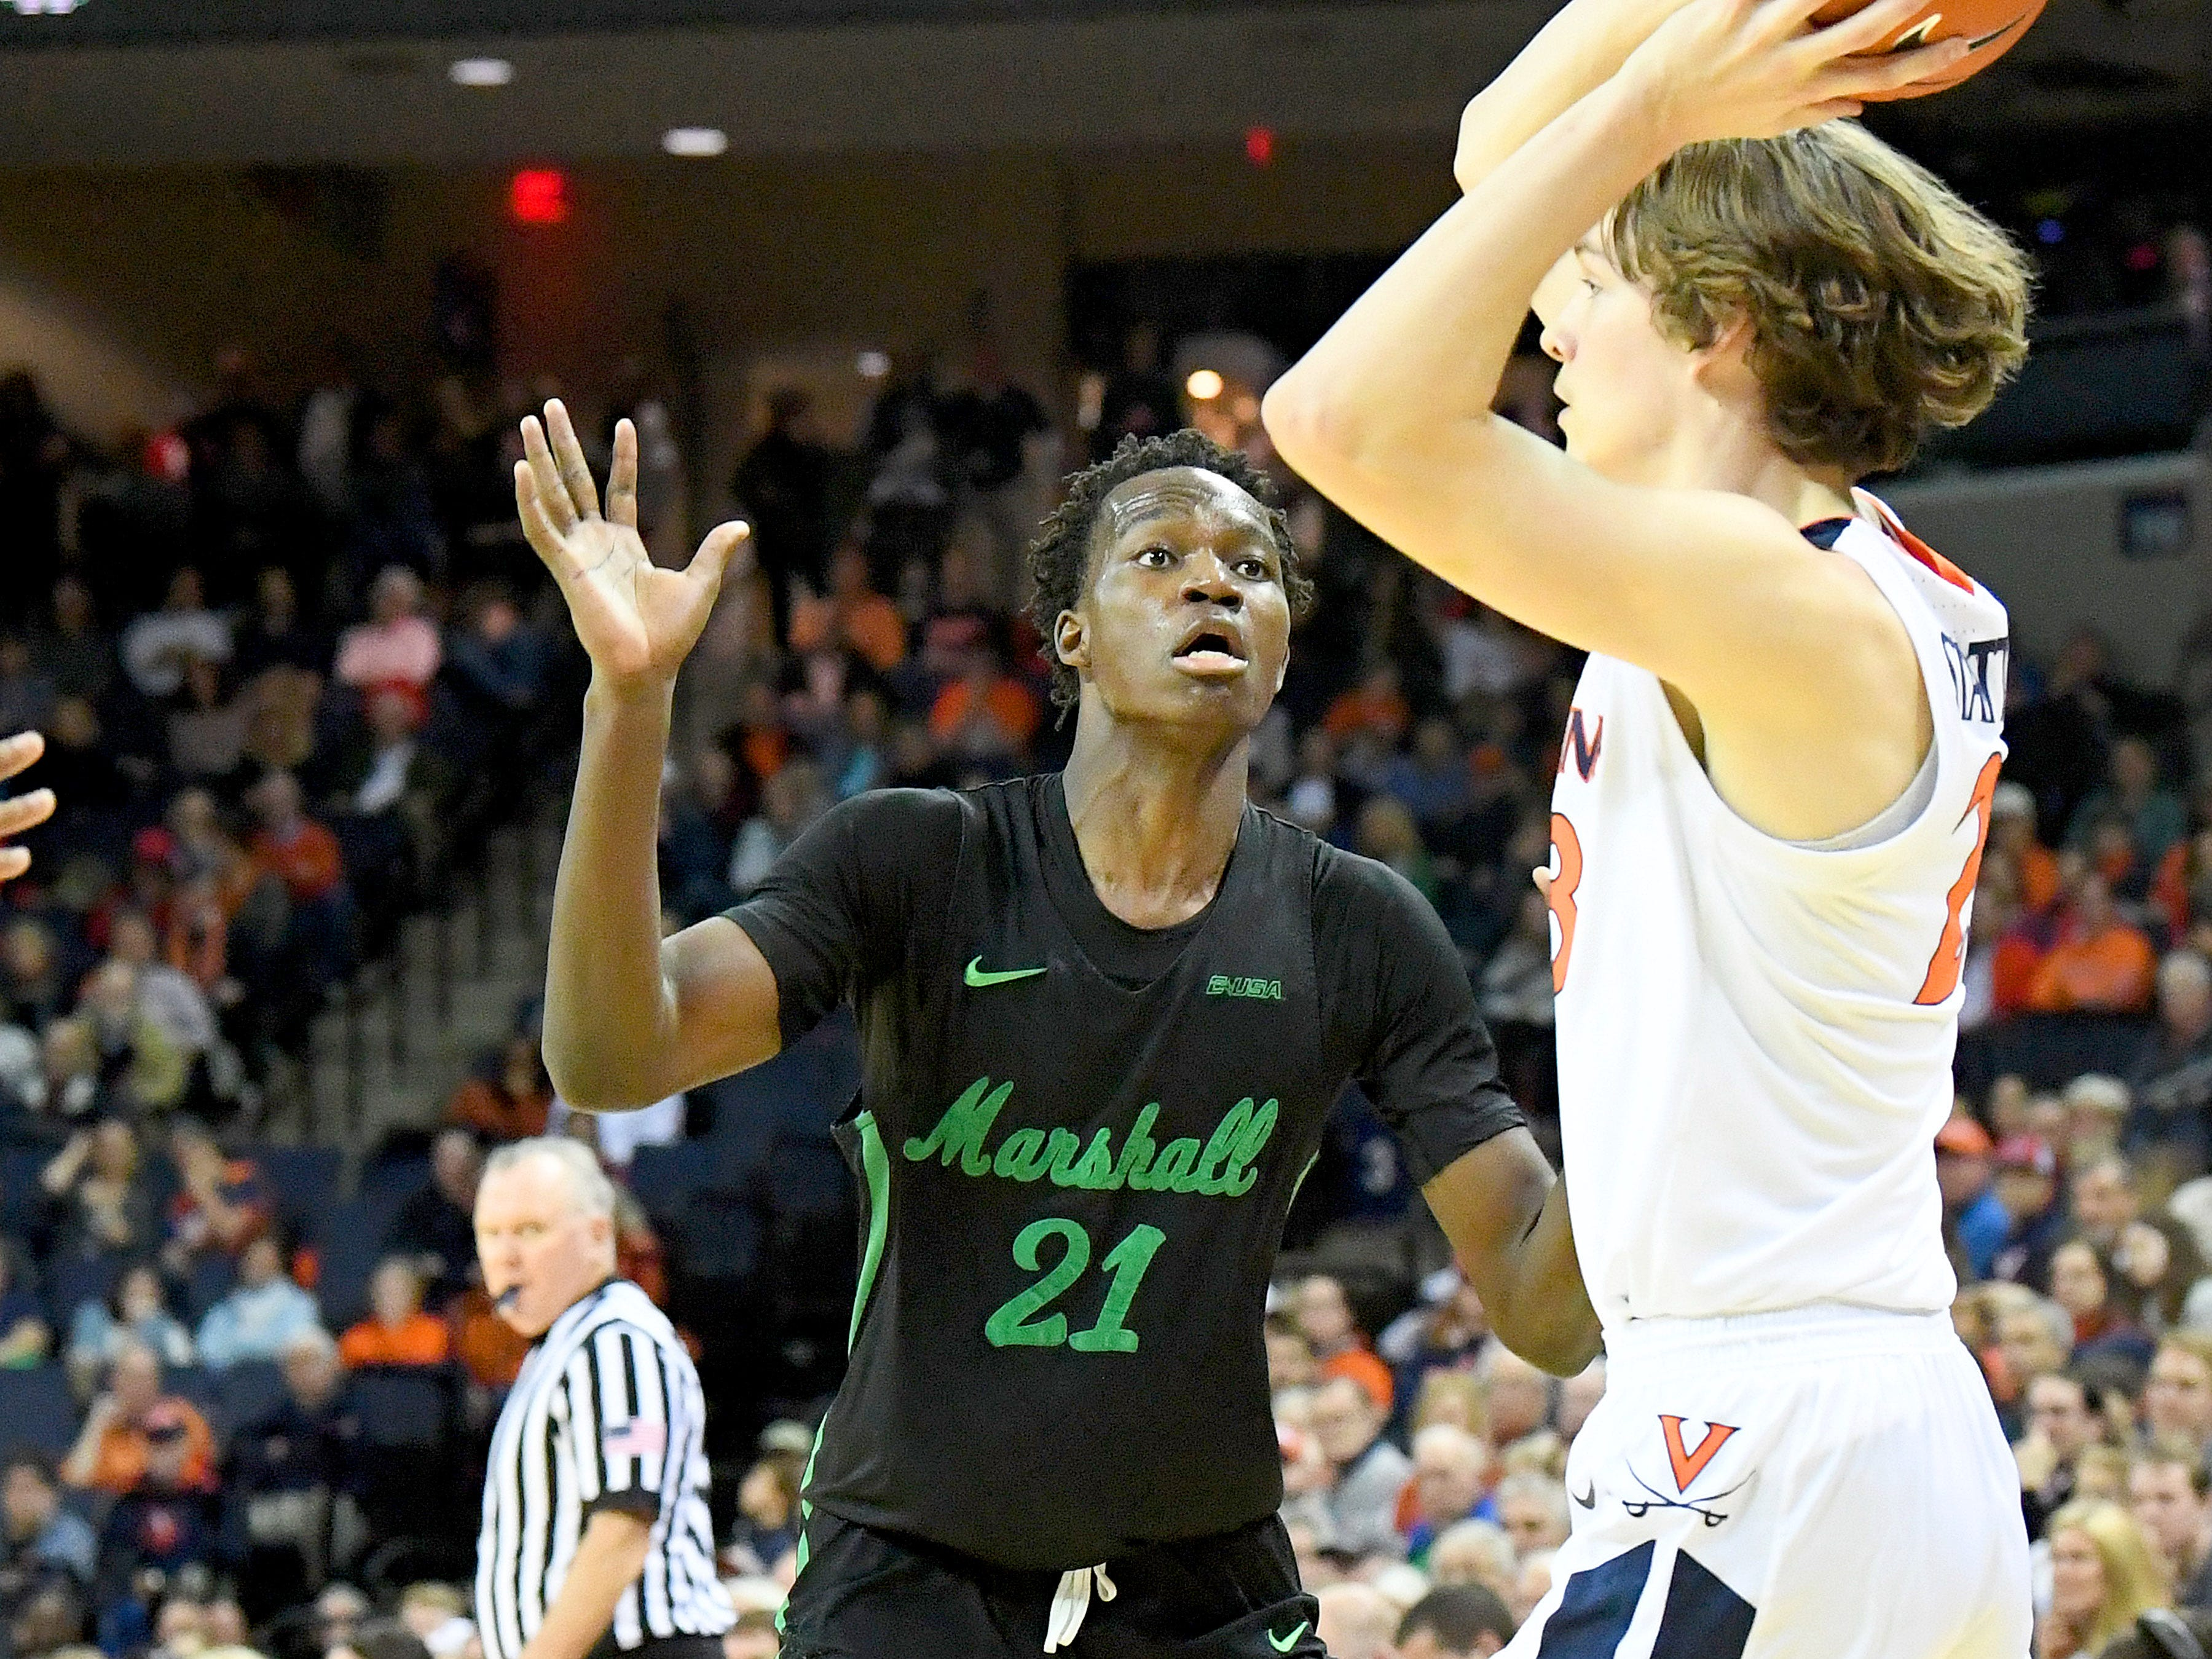 Marshall's Darius George, former R.E. Lee star, guards  during their game against University of Virginia, played at the John Paul Jones Arena on Dec. 31, 2016.